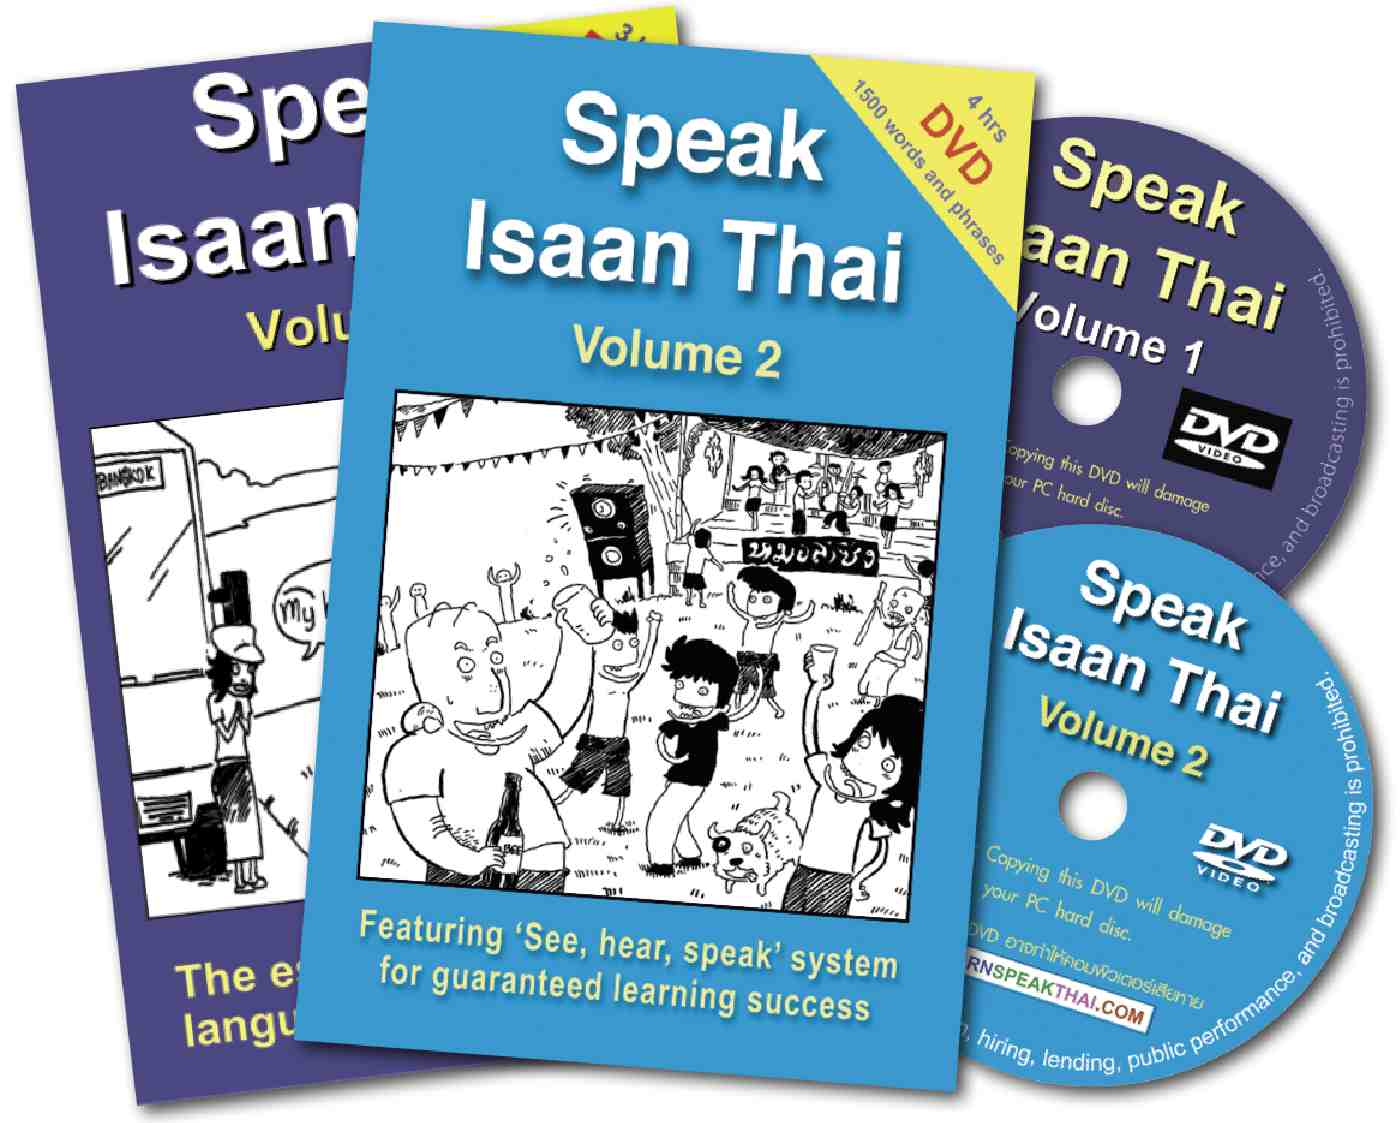 The Complete Speak Isaan Thai 1 and 2